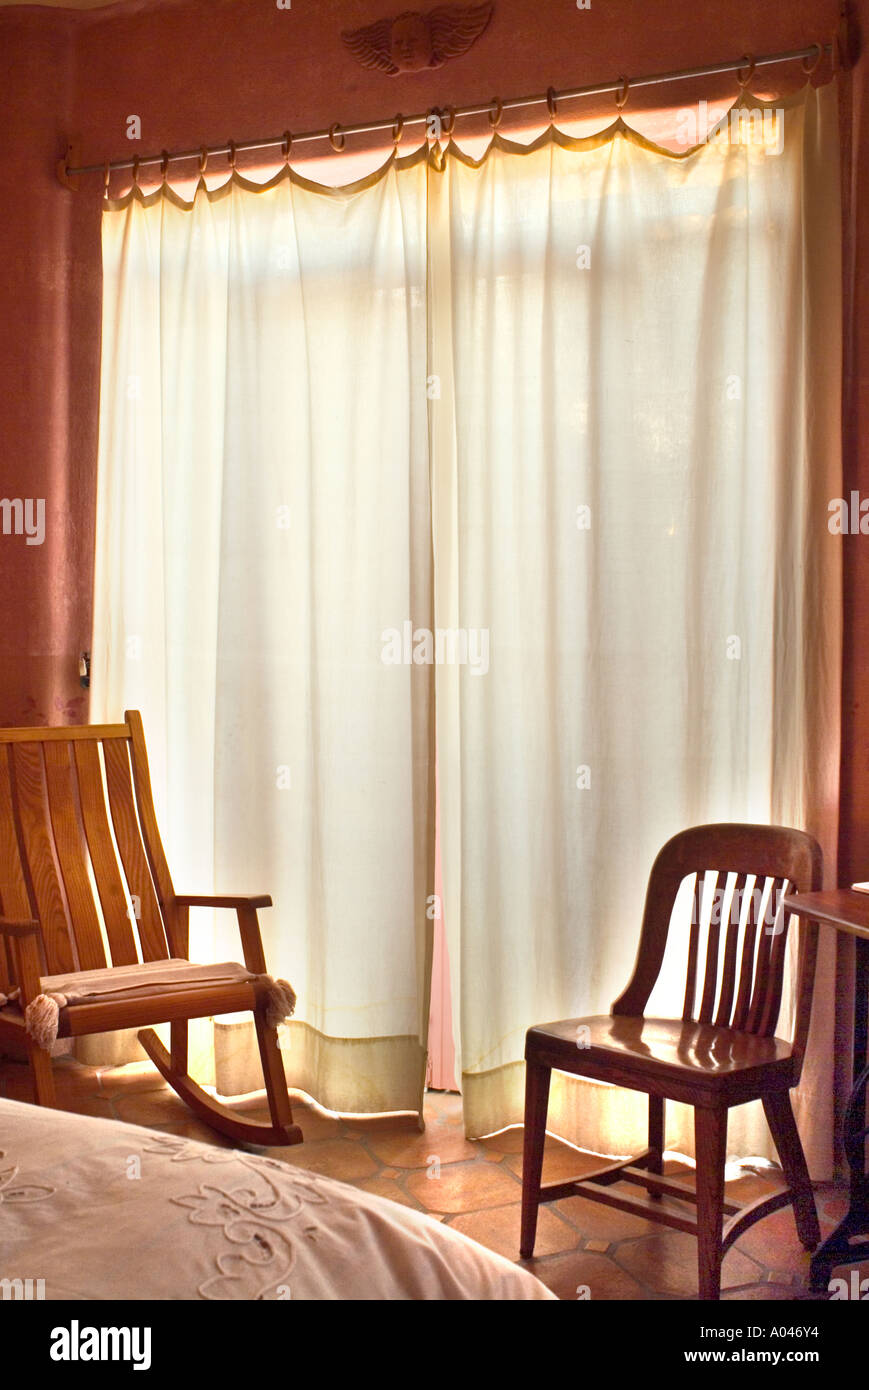 Mexican Rocking Chair Backlit White Curtains In Mexican Style Bedroom Wooden